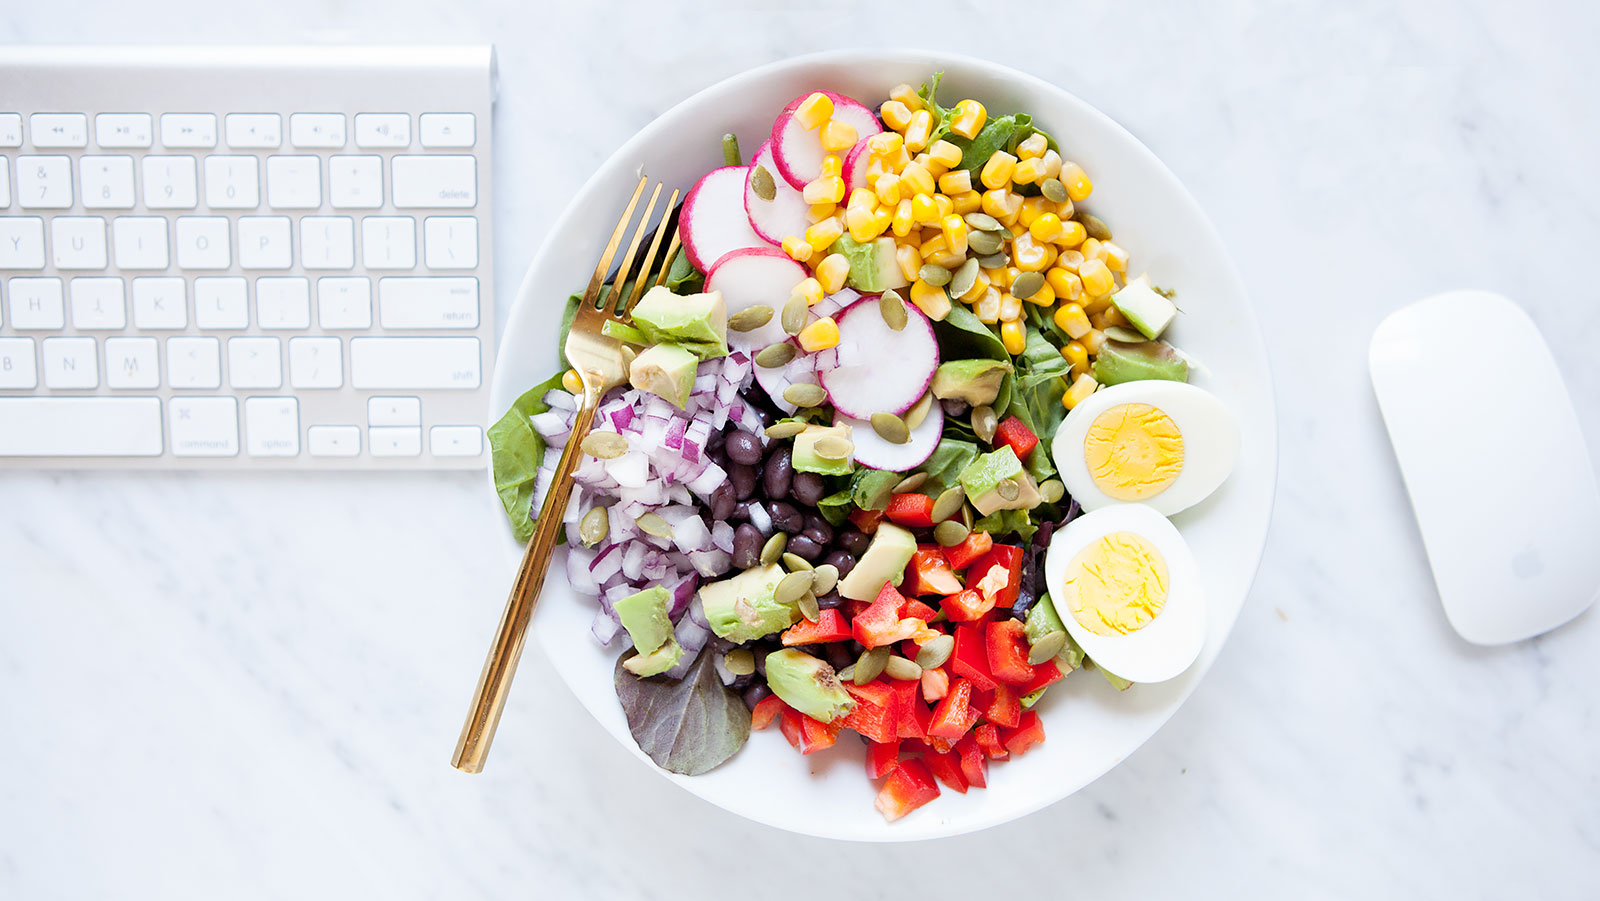 How to Build a Power Bowl | Healthy, gluten-free bowl recipes. | Loveleaf Co.